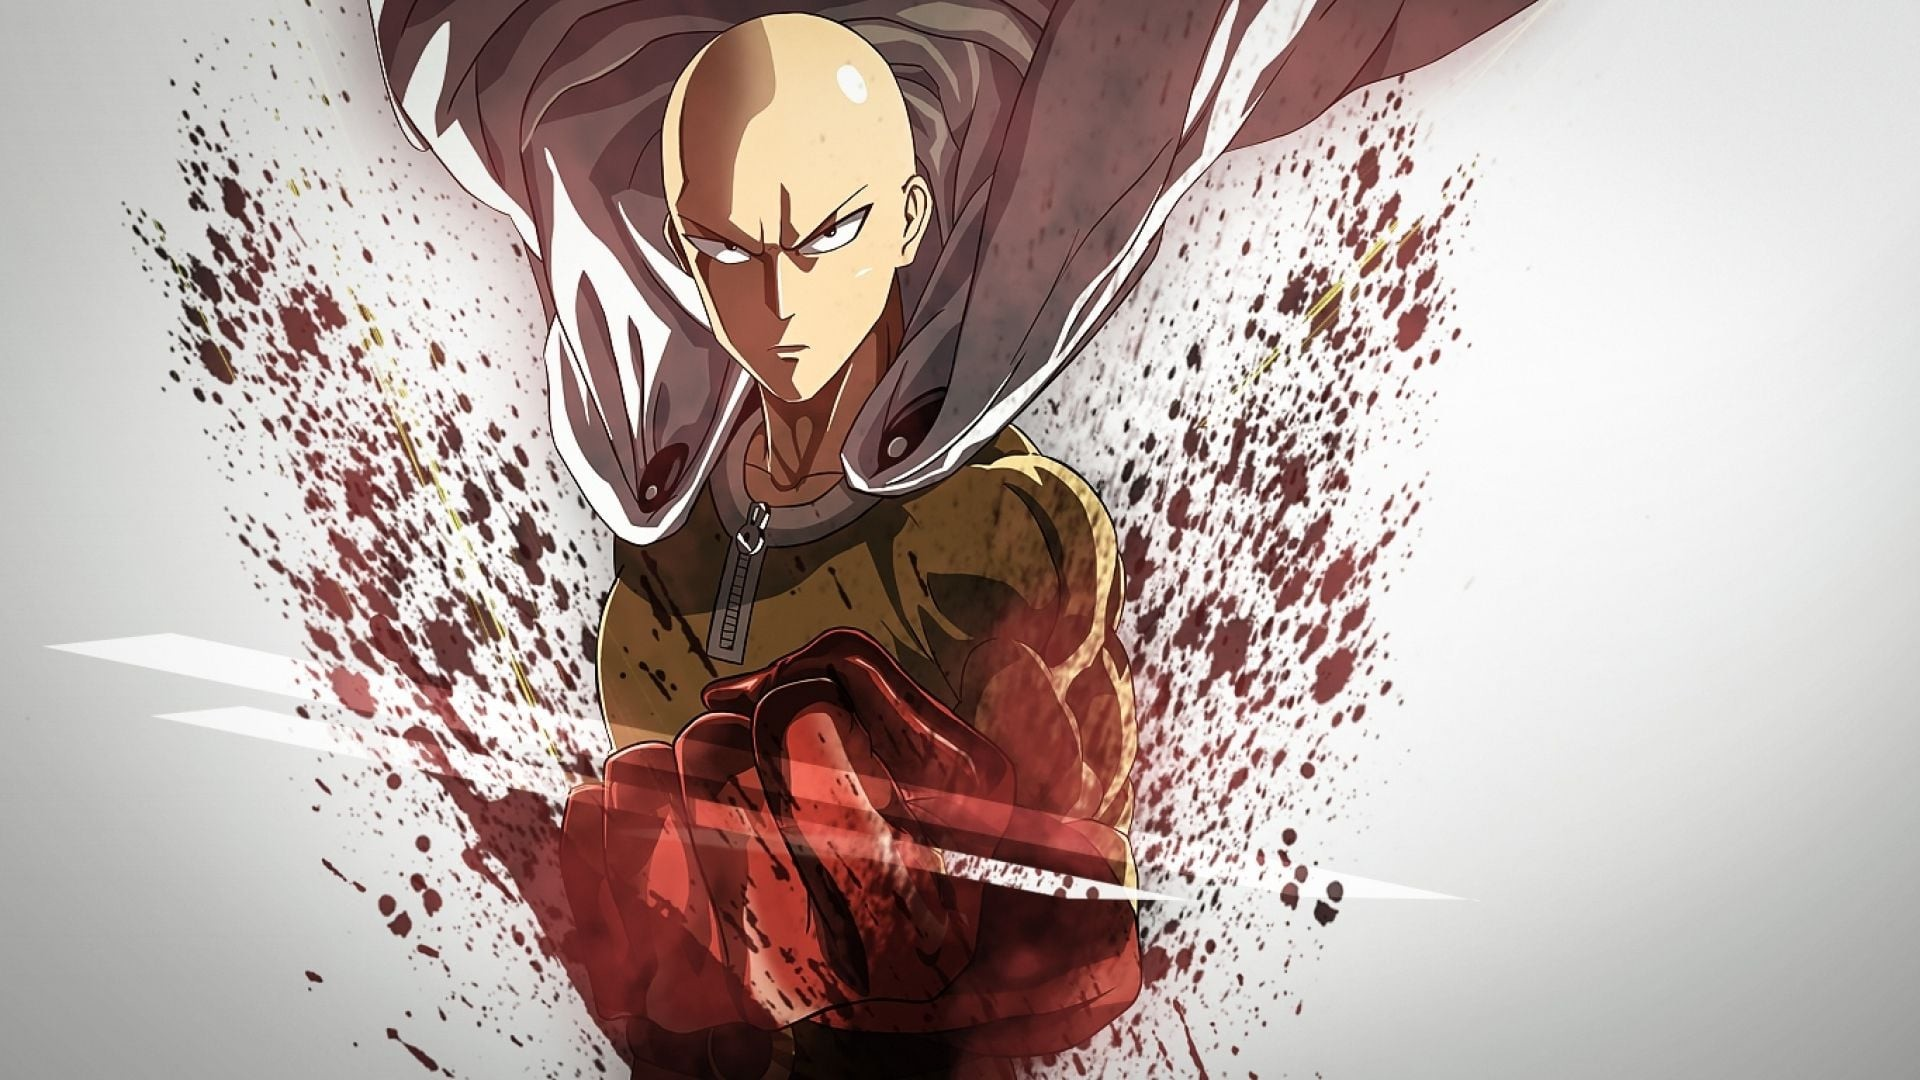 One Punch Man Wallpaper 1920x1080 Posted By John Sellers